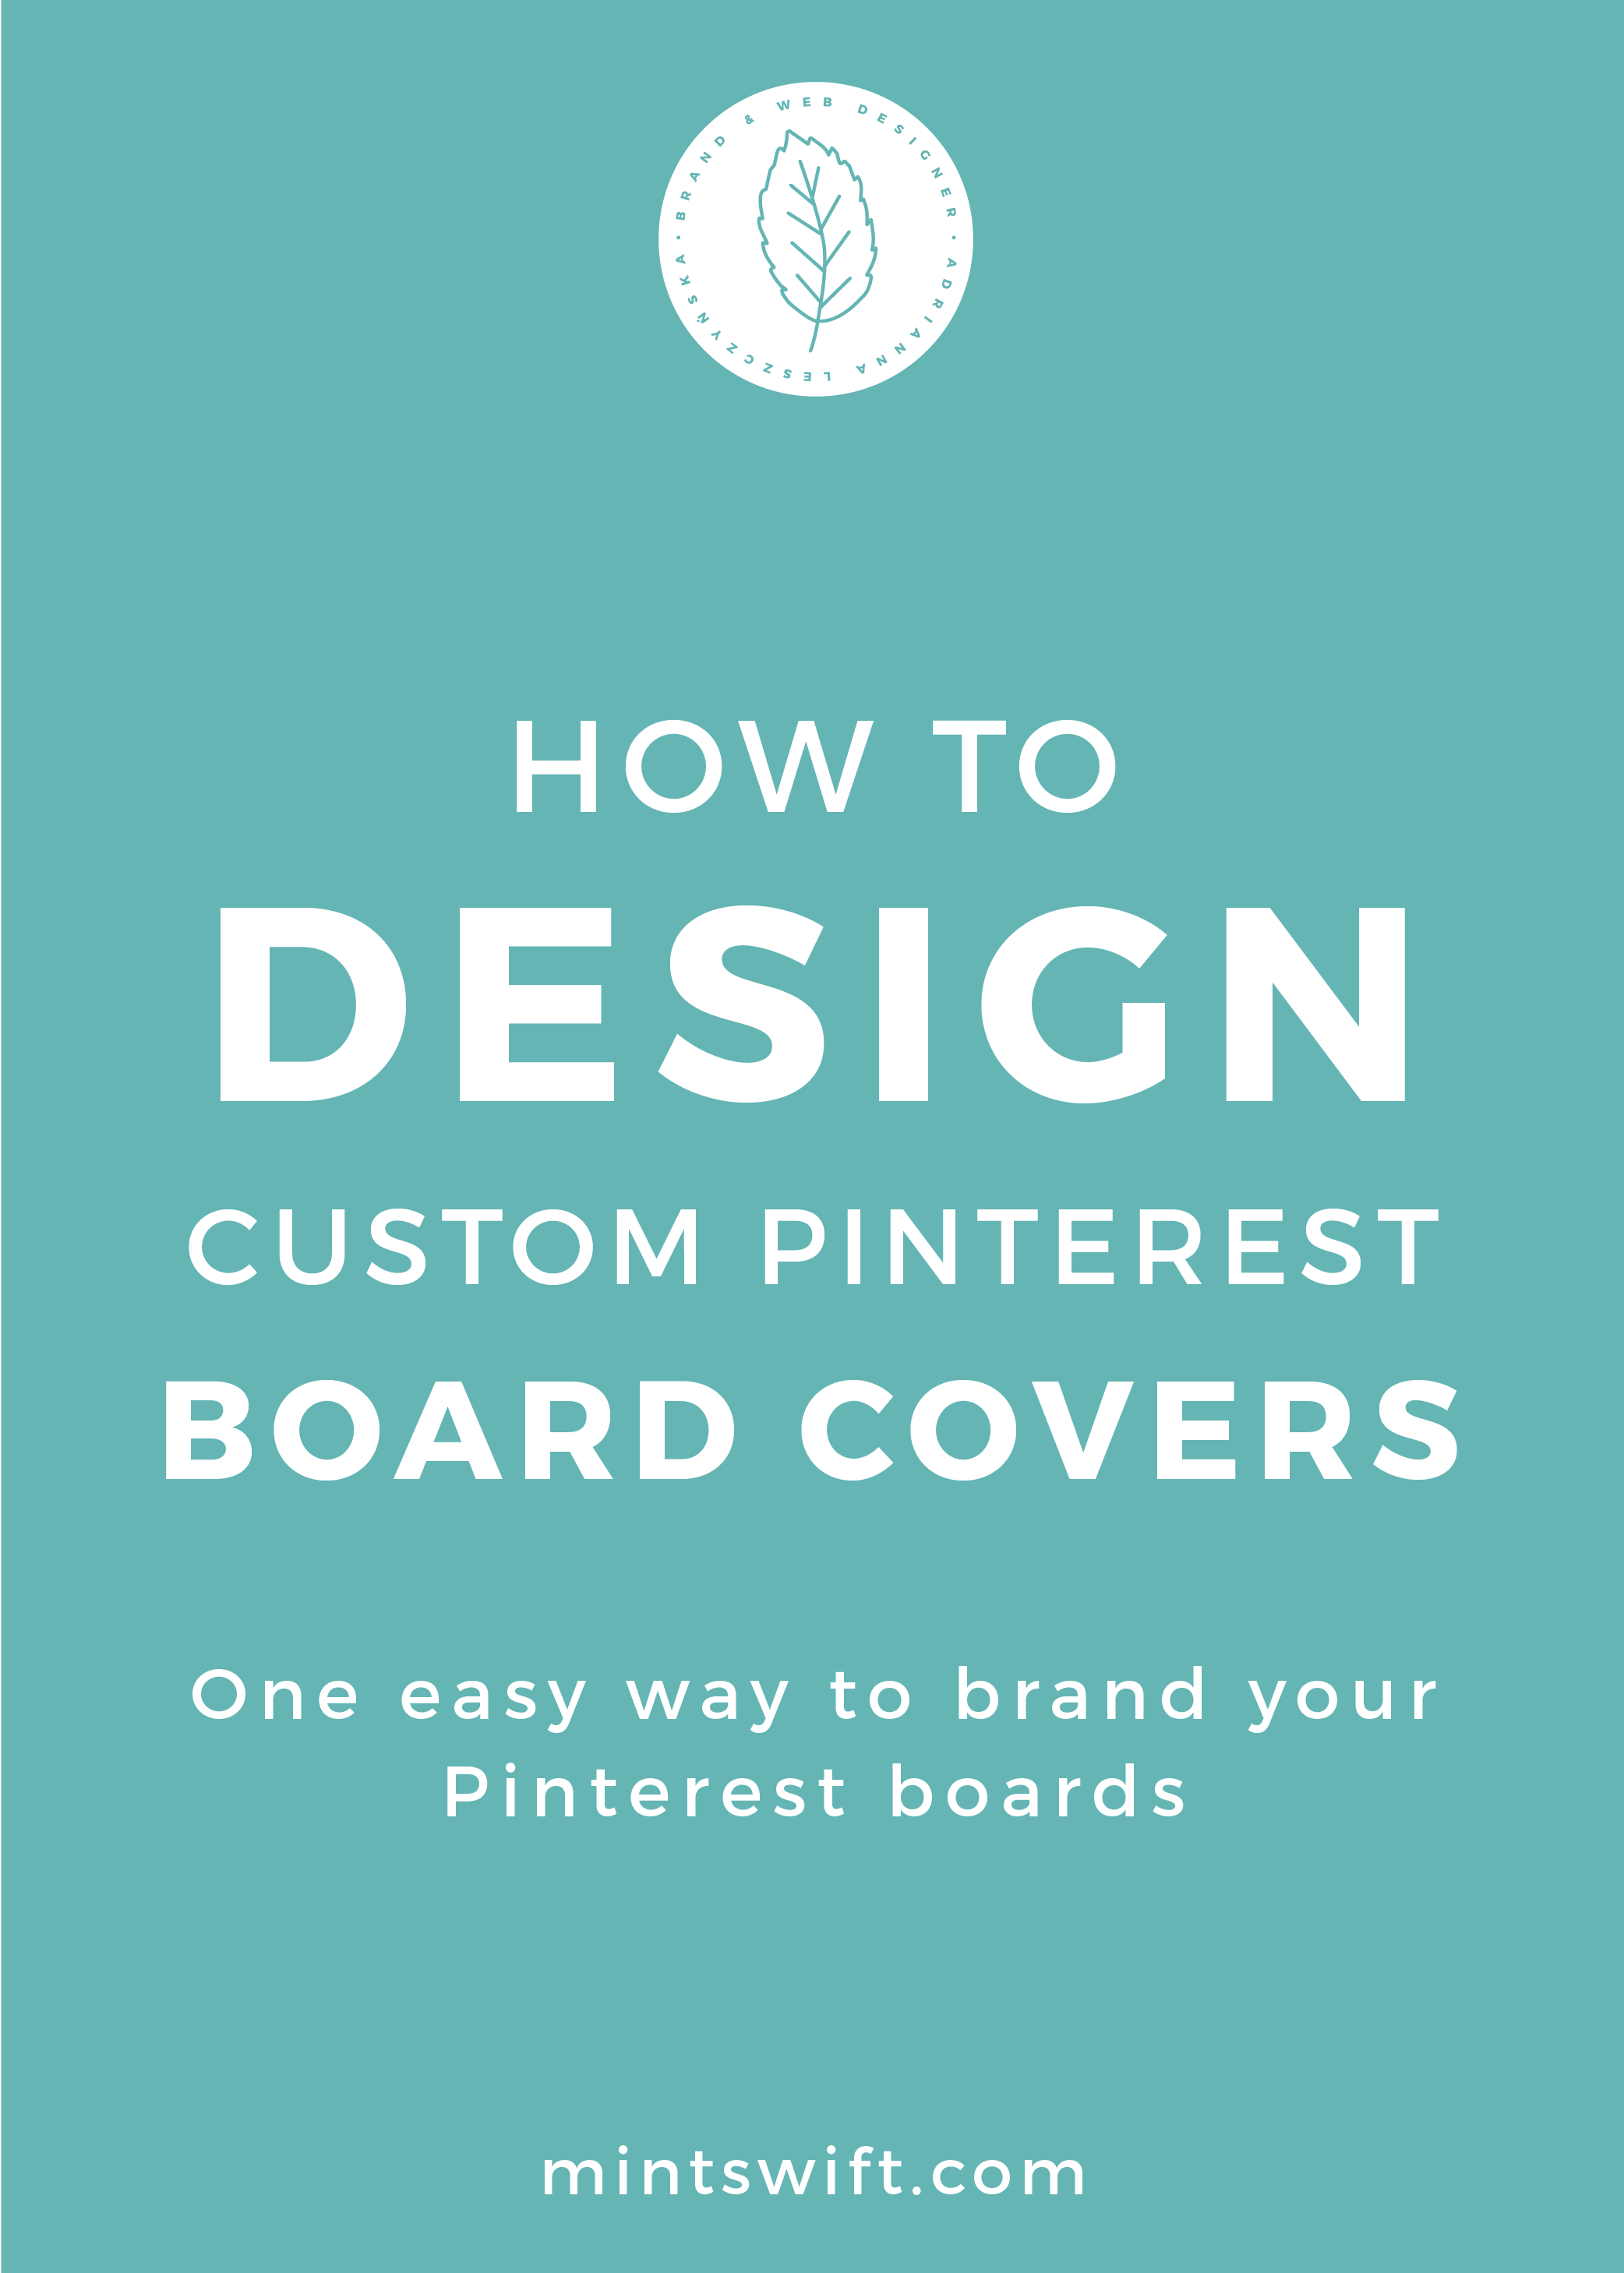 How to Design Custom Pinterest Board Covers. One Easy Way to Brand Your Pinterest Boards - MintSwift